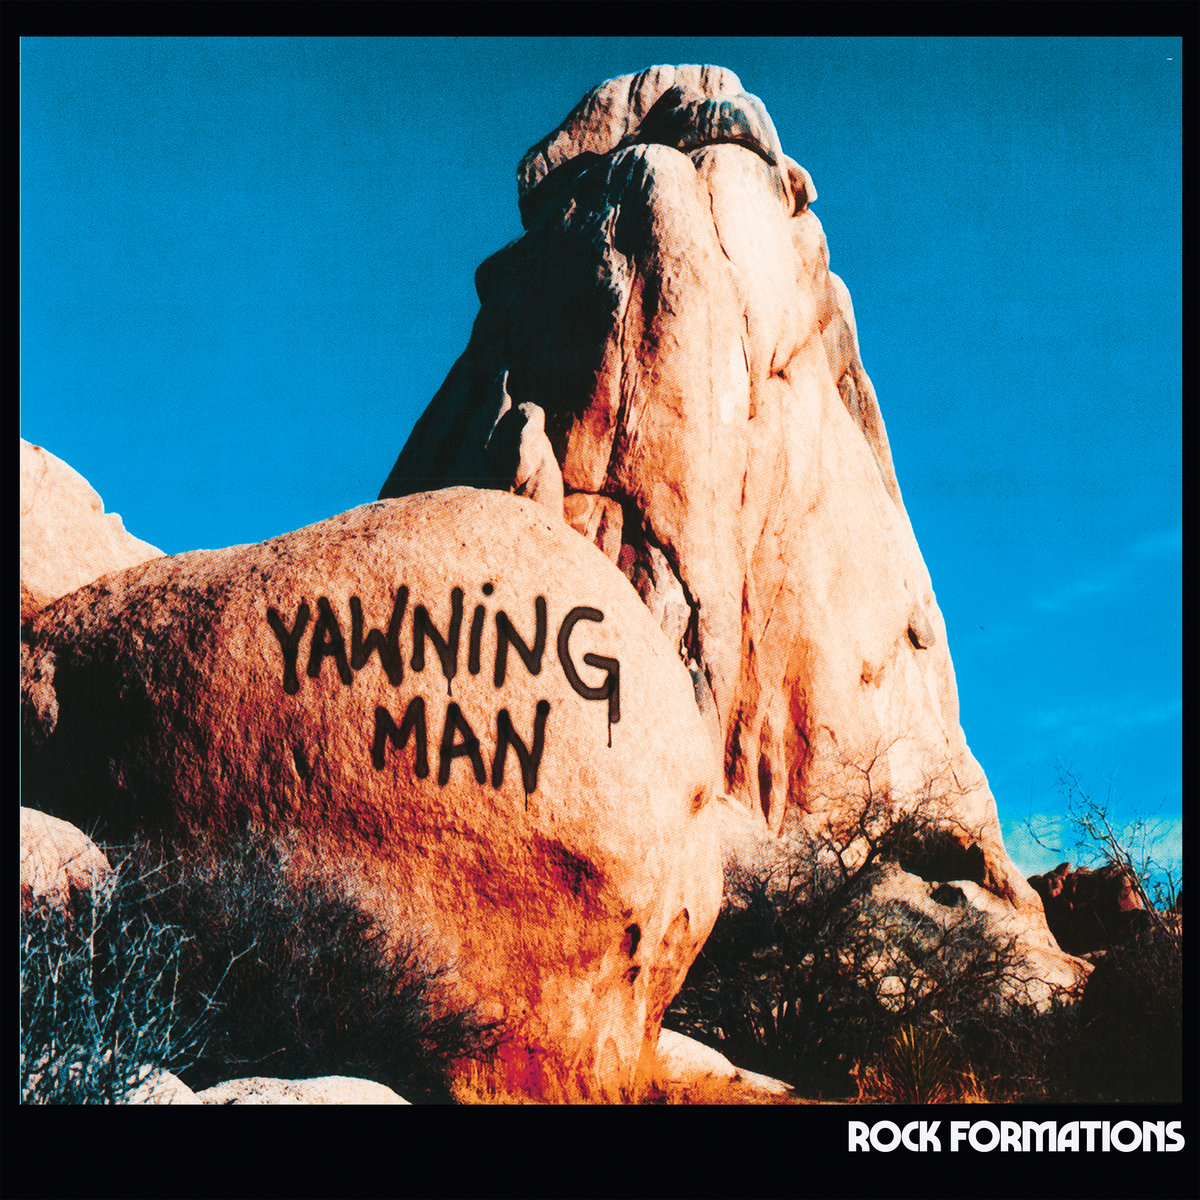 yawning man rock formations ripple issue